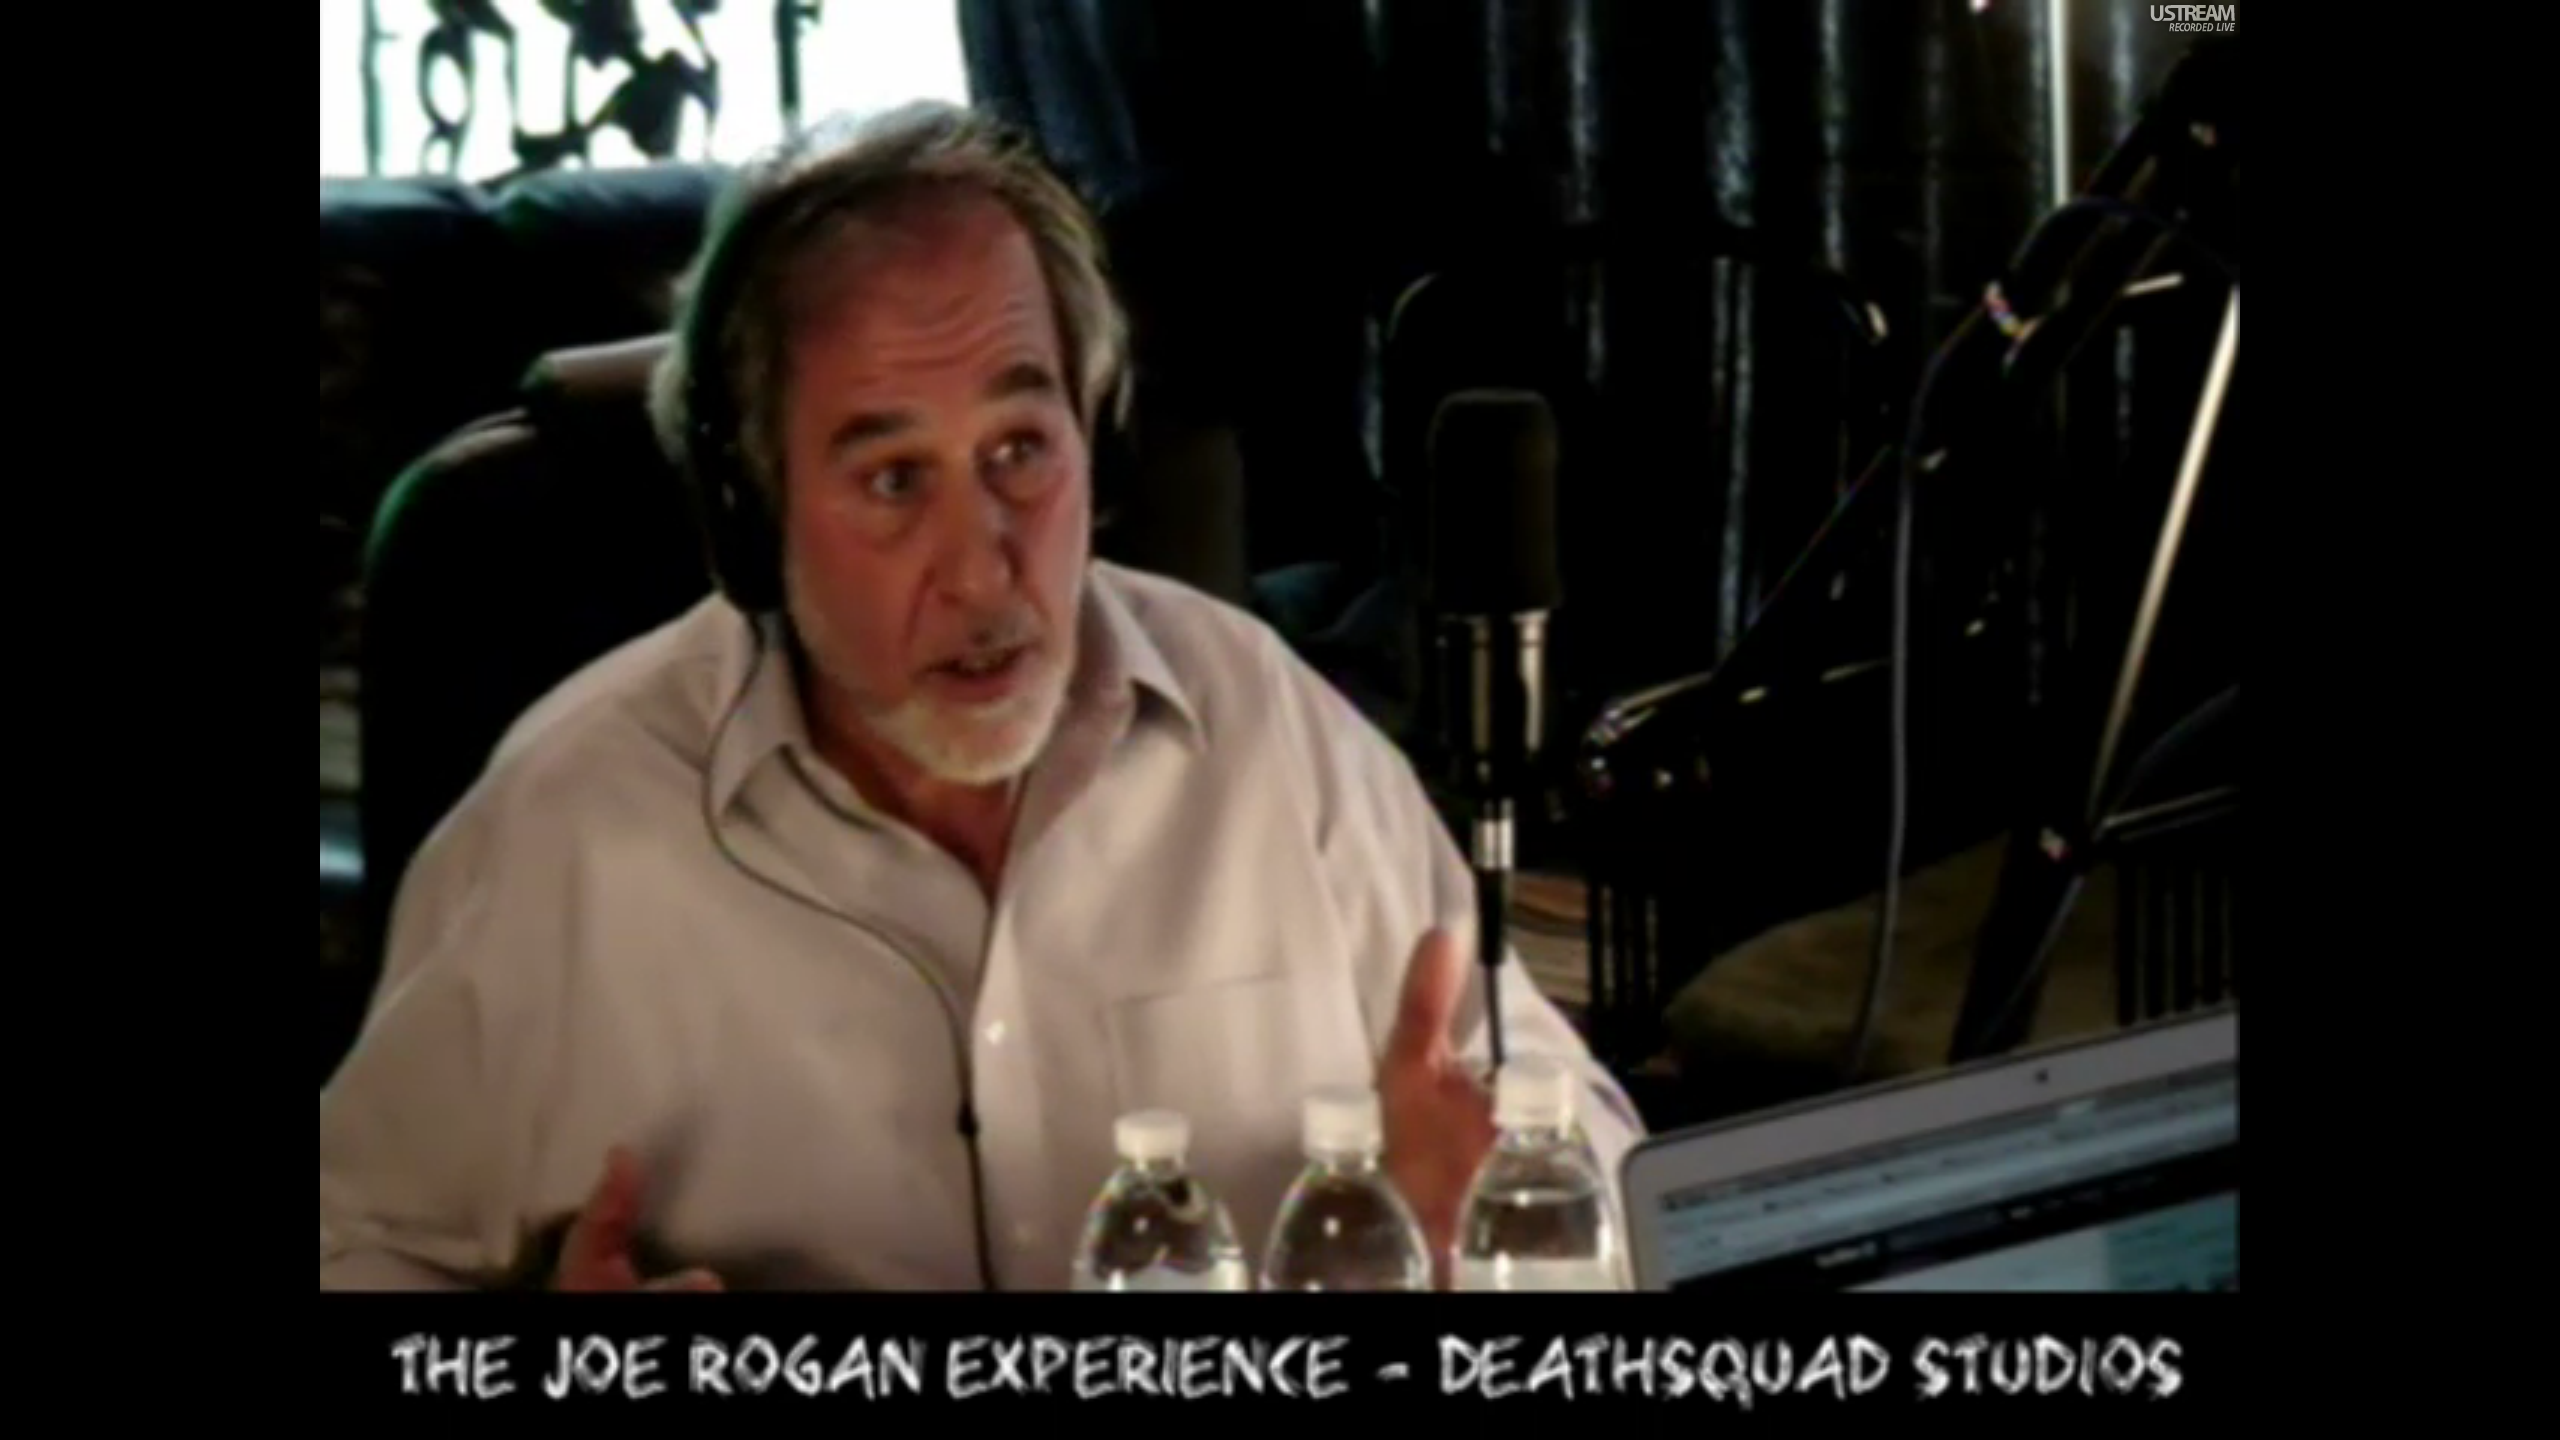 The Joe Rogan Experience PODCAST #165 - Bruce Lipton, Brian Redban